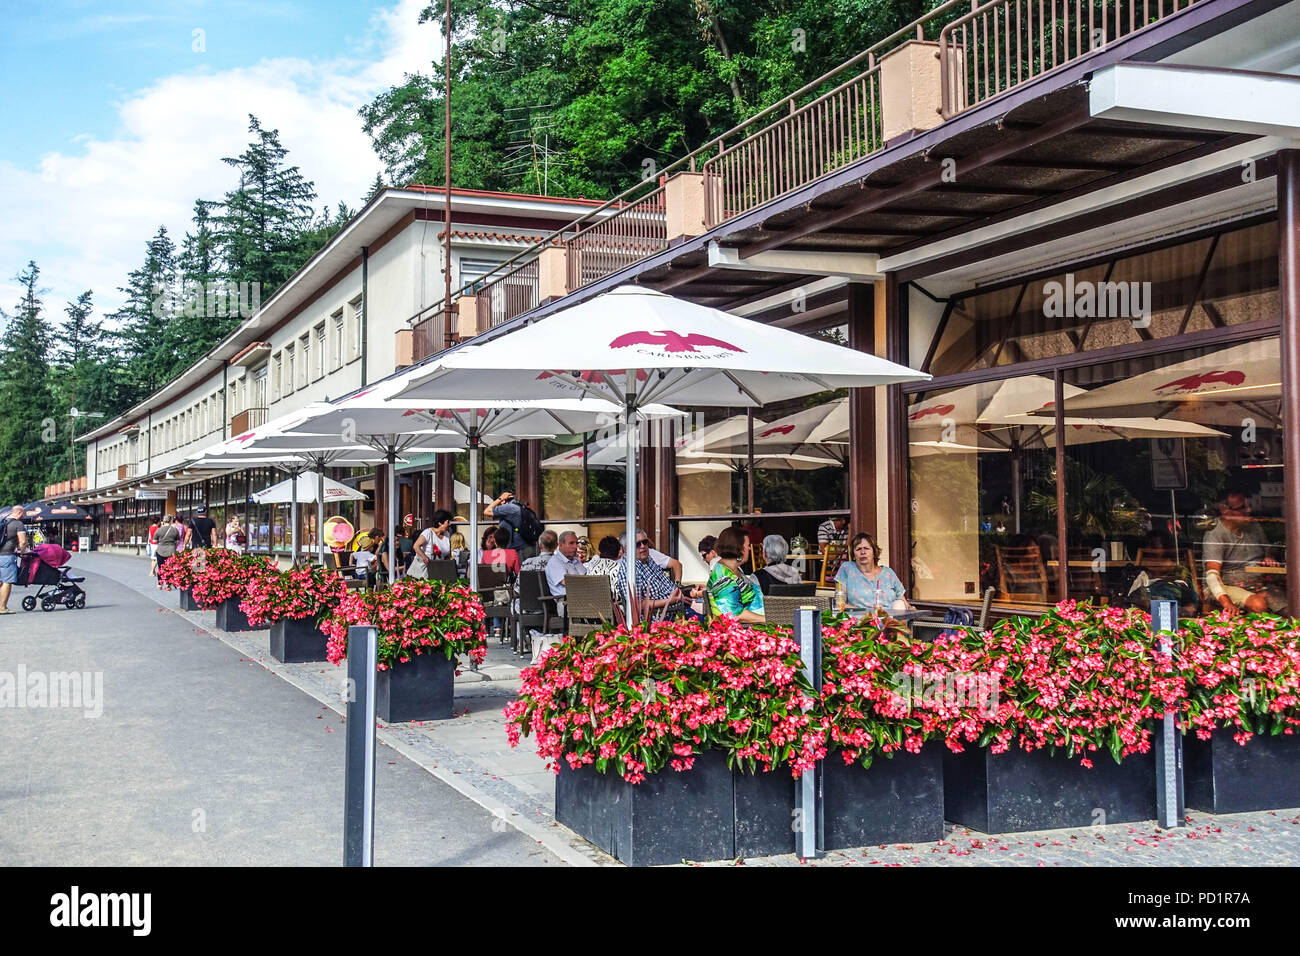 Colonnade, Luhacovice is a spa town in the Zlin Region, Moravia, Czech Republic. - Stock Image